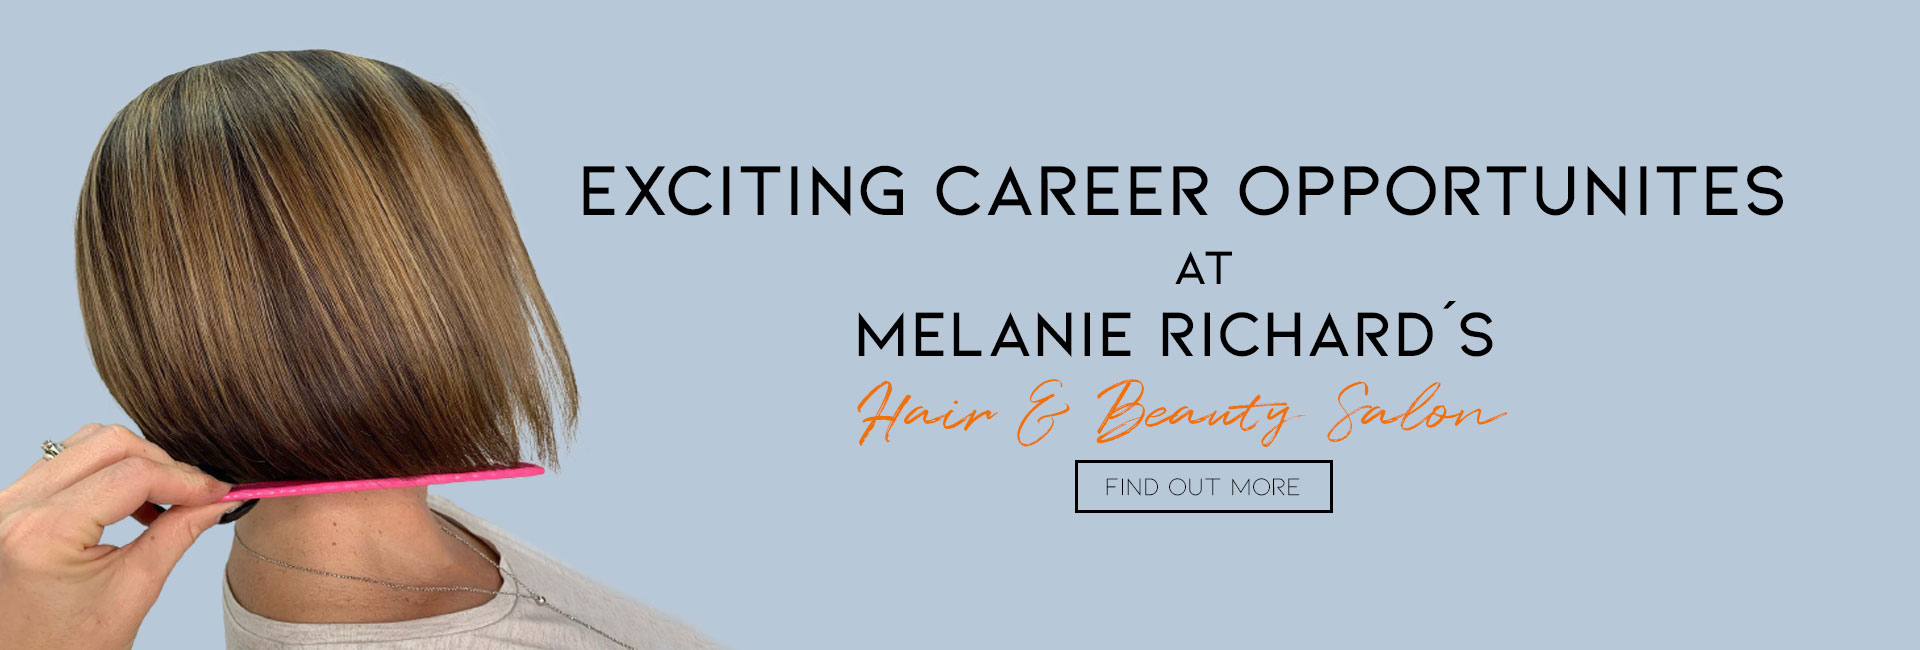 Hair Stylist Jobs In Peterborough At Melanie Richard's Hair & Beauty Salon